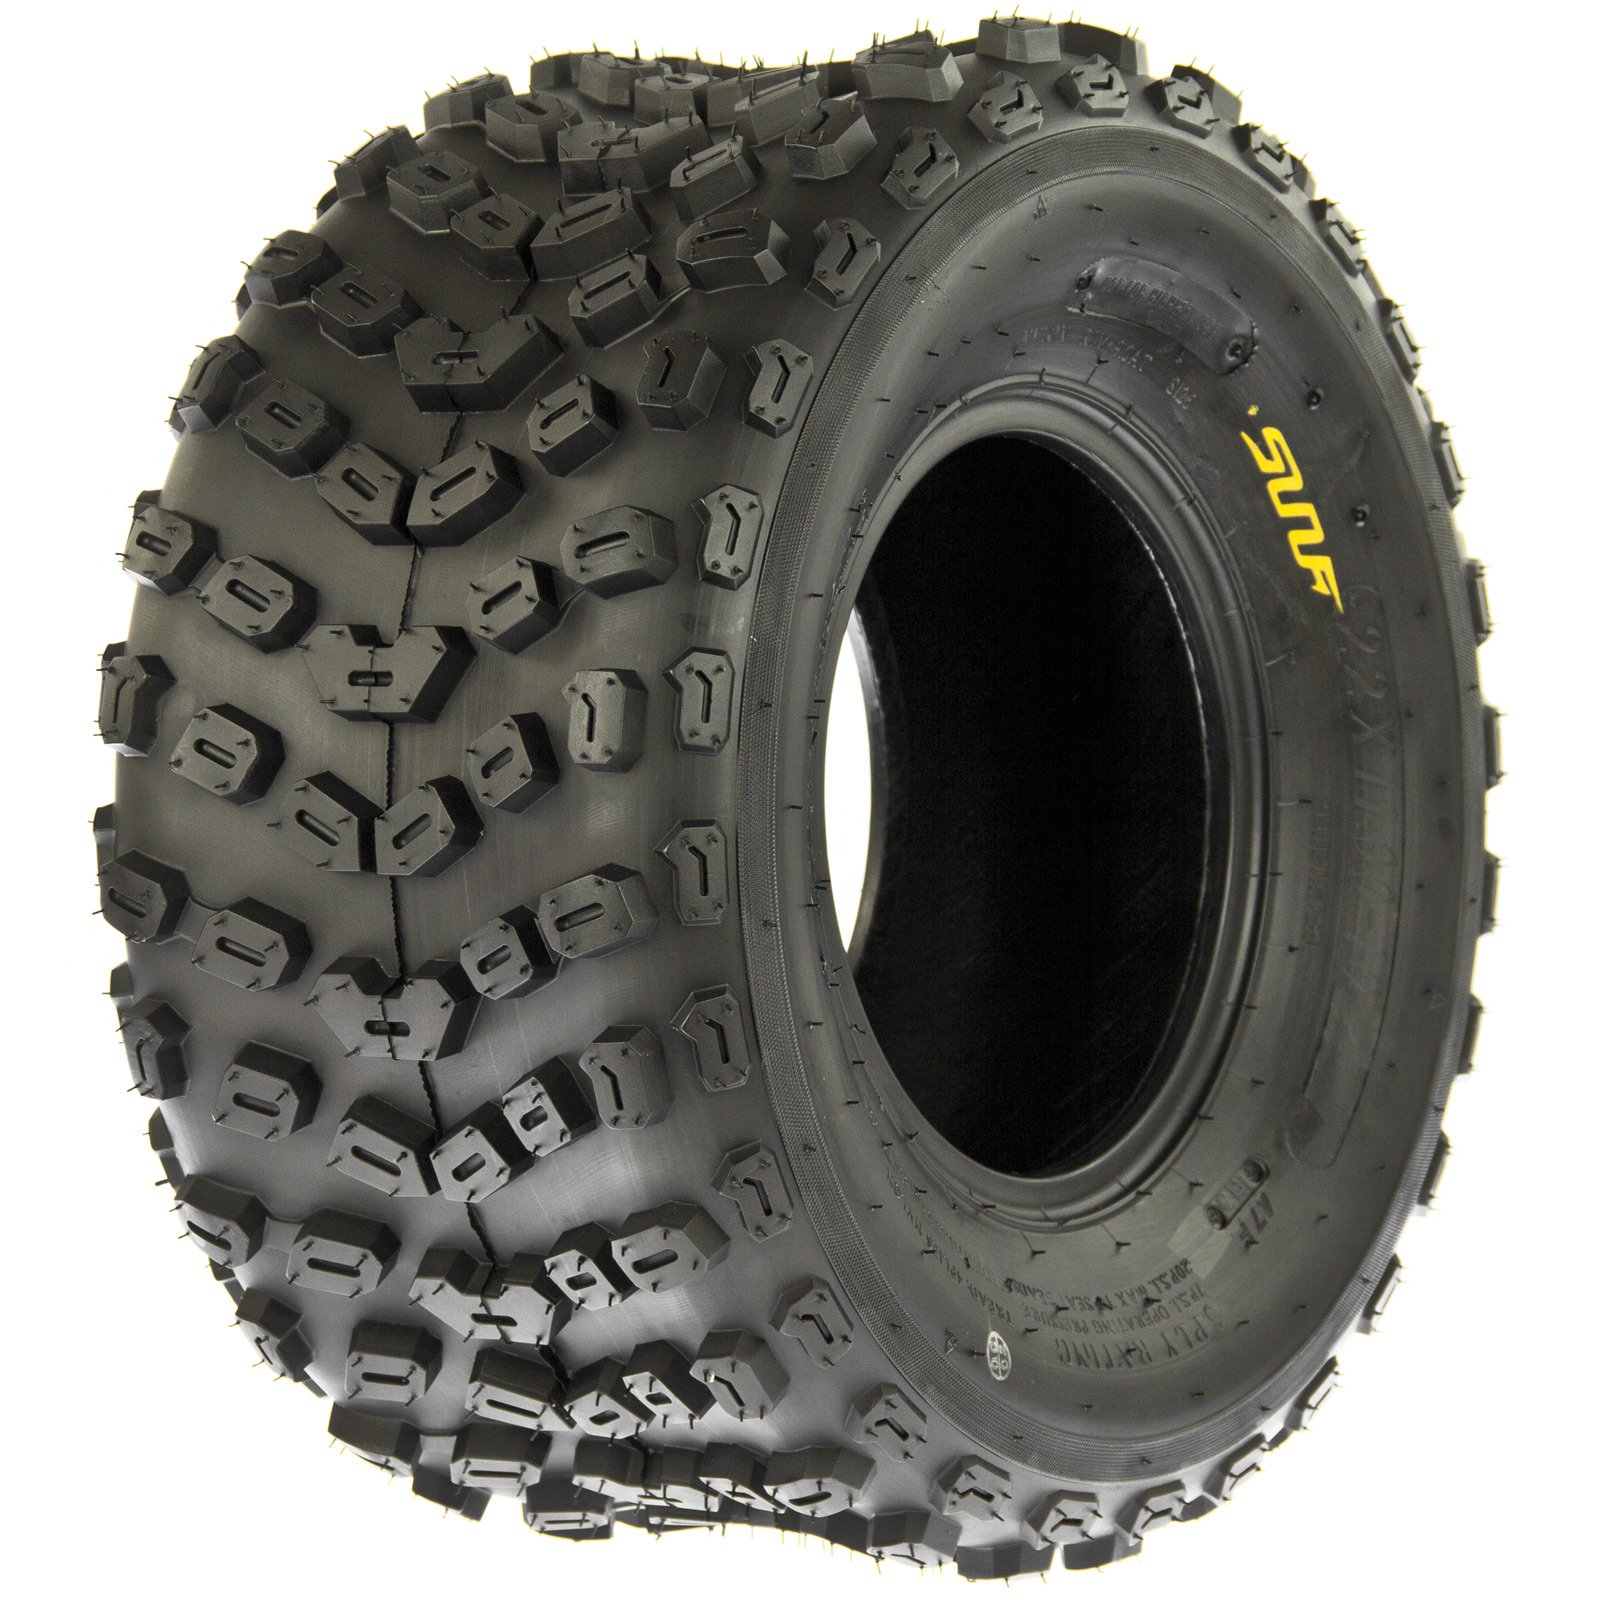 SunF A005 ATV Tires 22x11-10 Rear, 6 Ply